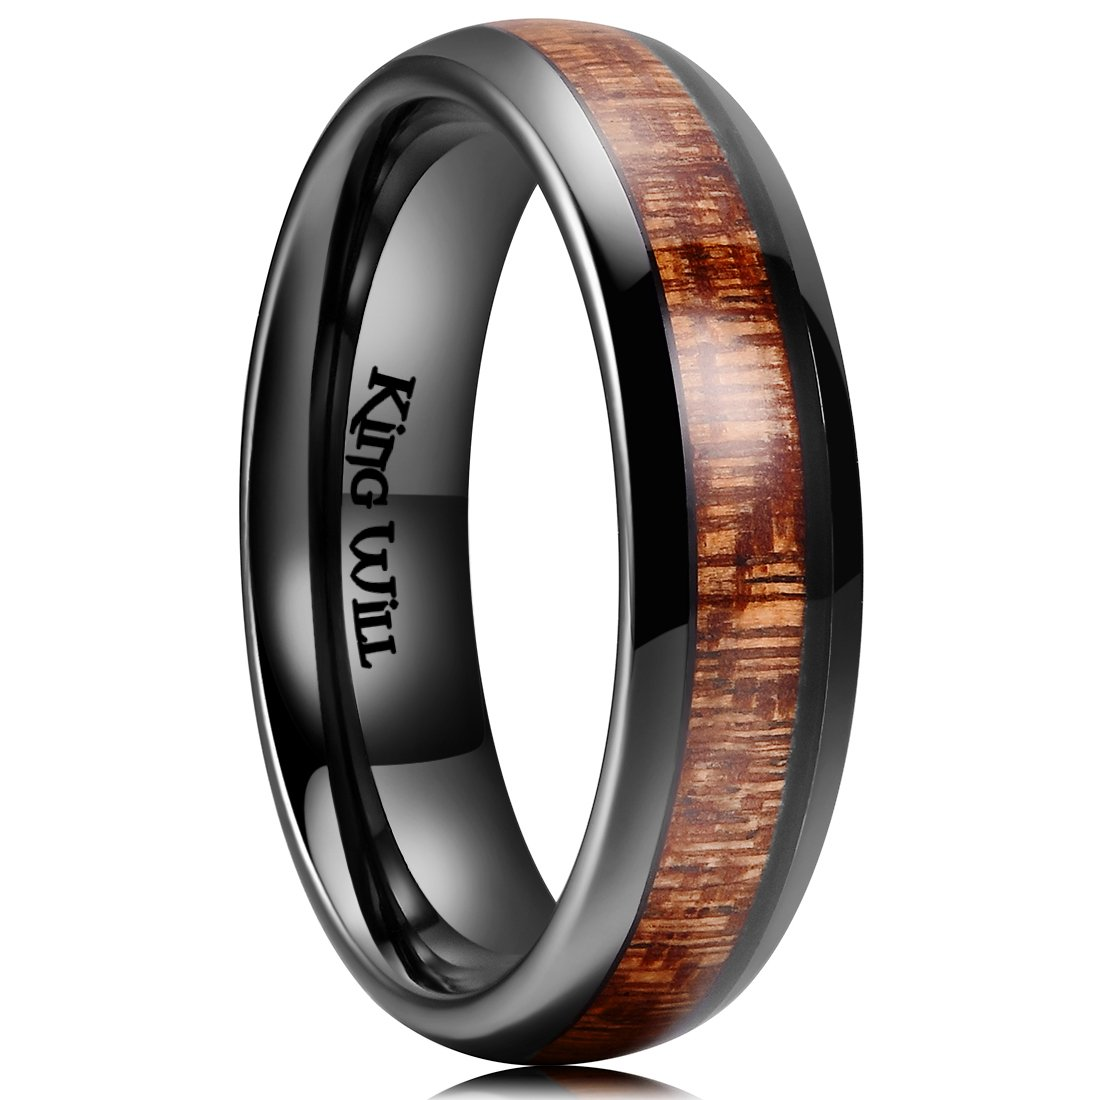 King Will NATURE 6mm Black Domed Koa Wood Ceramic Ring Wedding Band Polished Finish Comfort Fit OY-CRM001